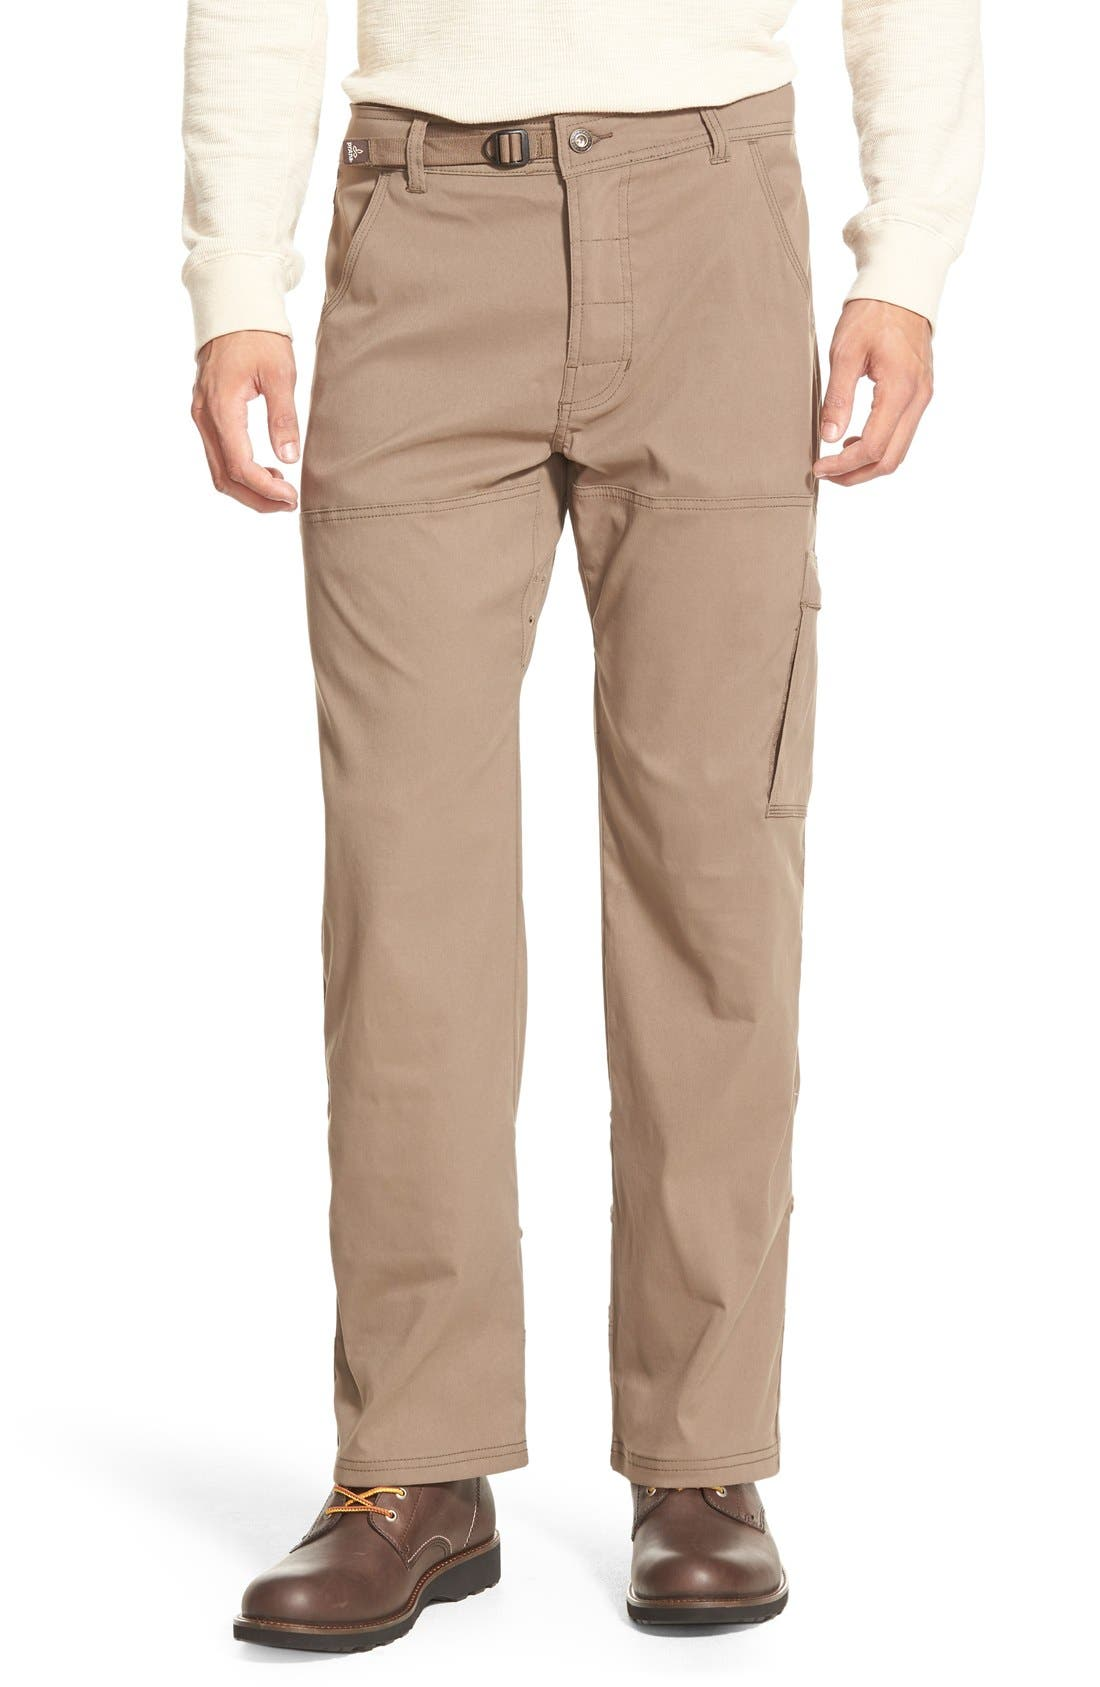 Main Image - prAna 'Zion' Stretchy Hiking Pants